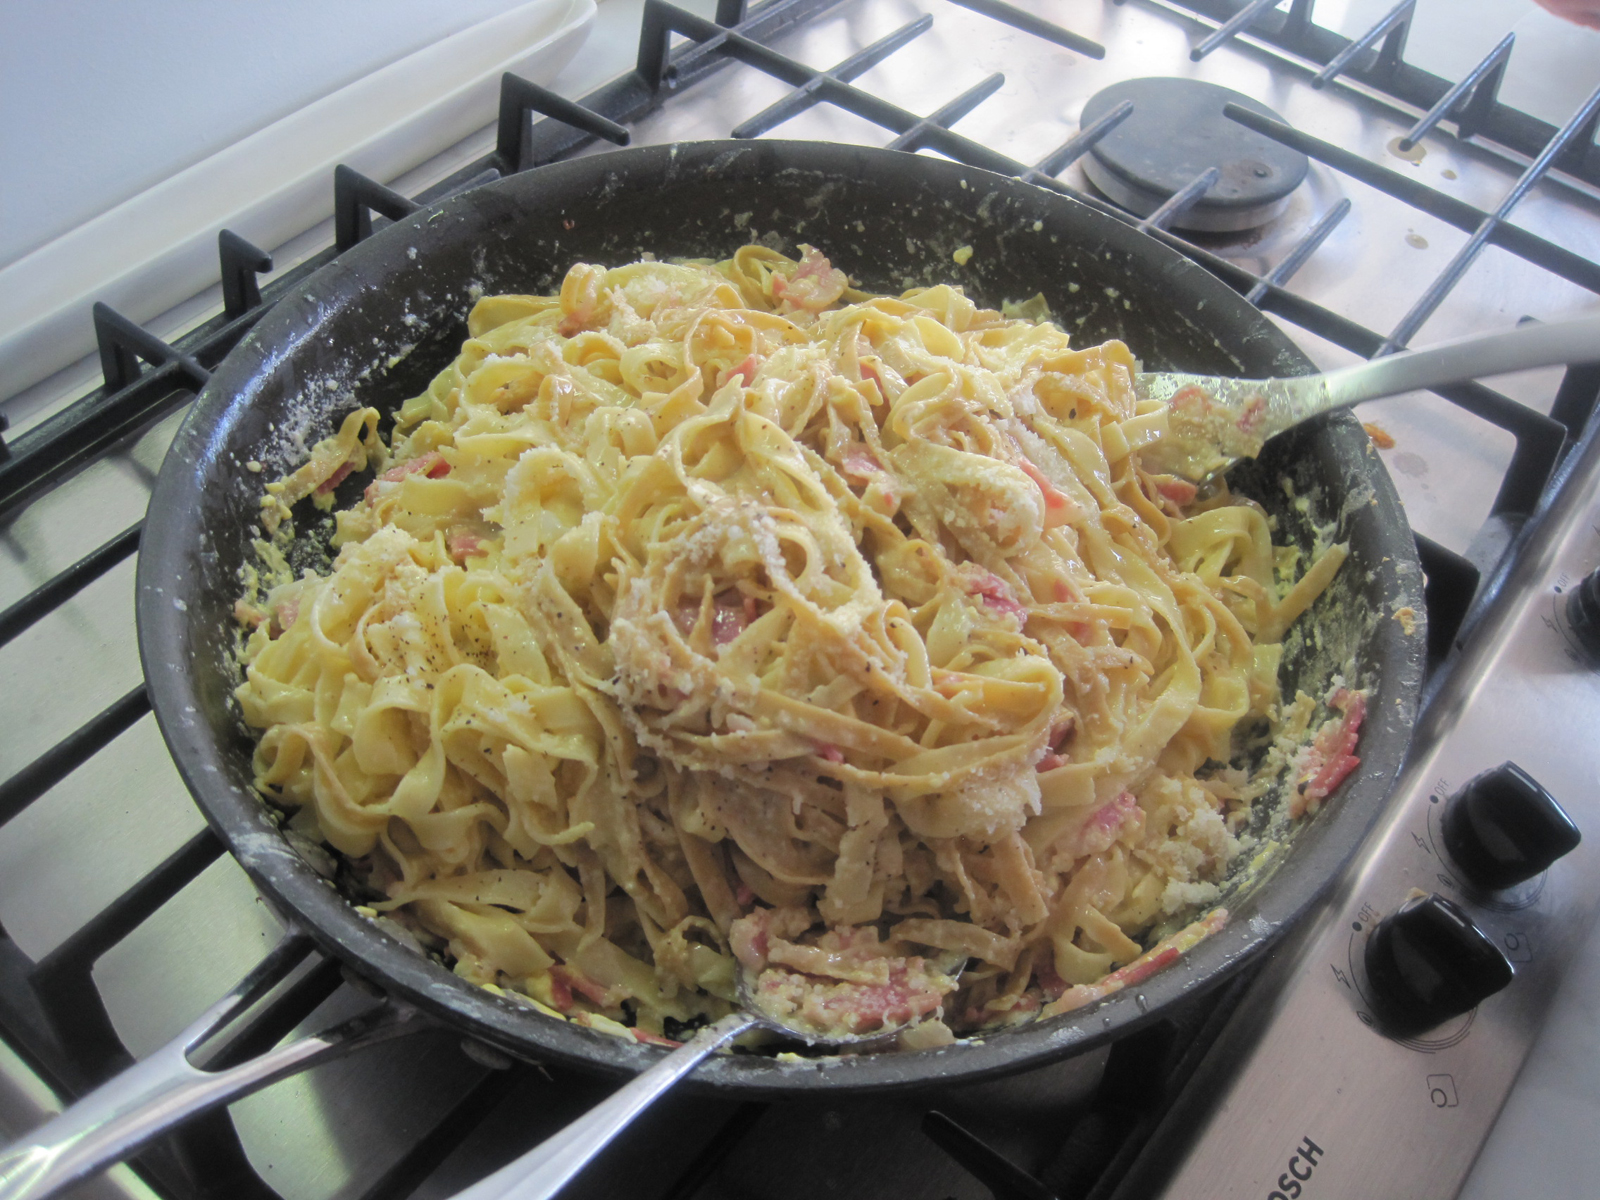 The eggs will coagulate as they come into contact with the hot pasta so it is important to work quickly.